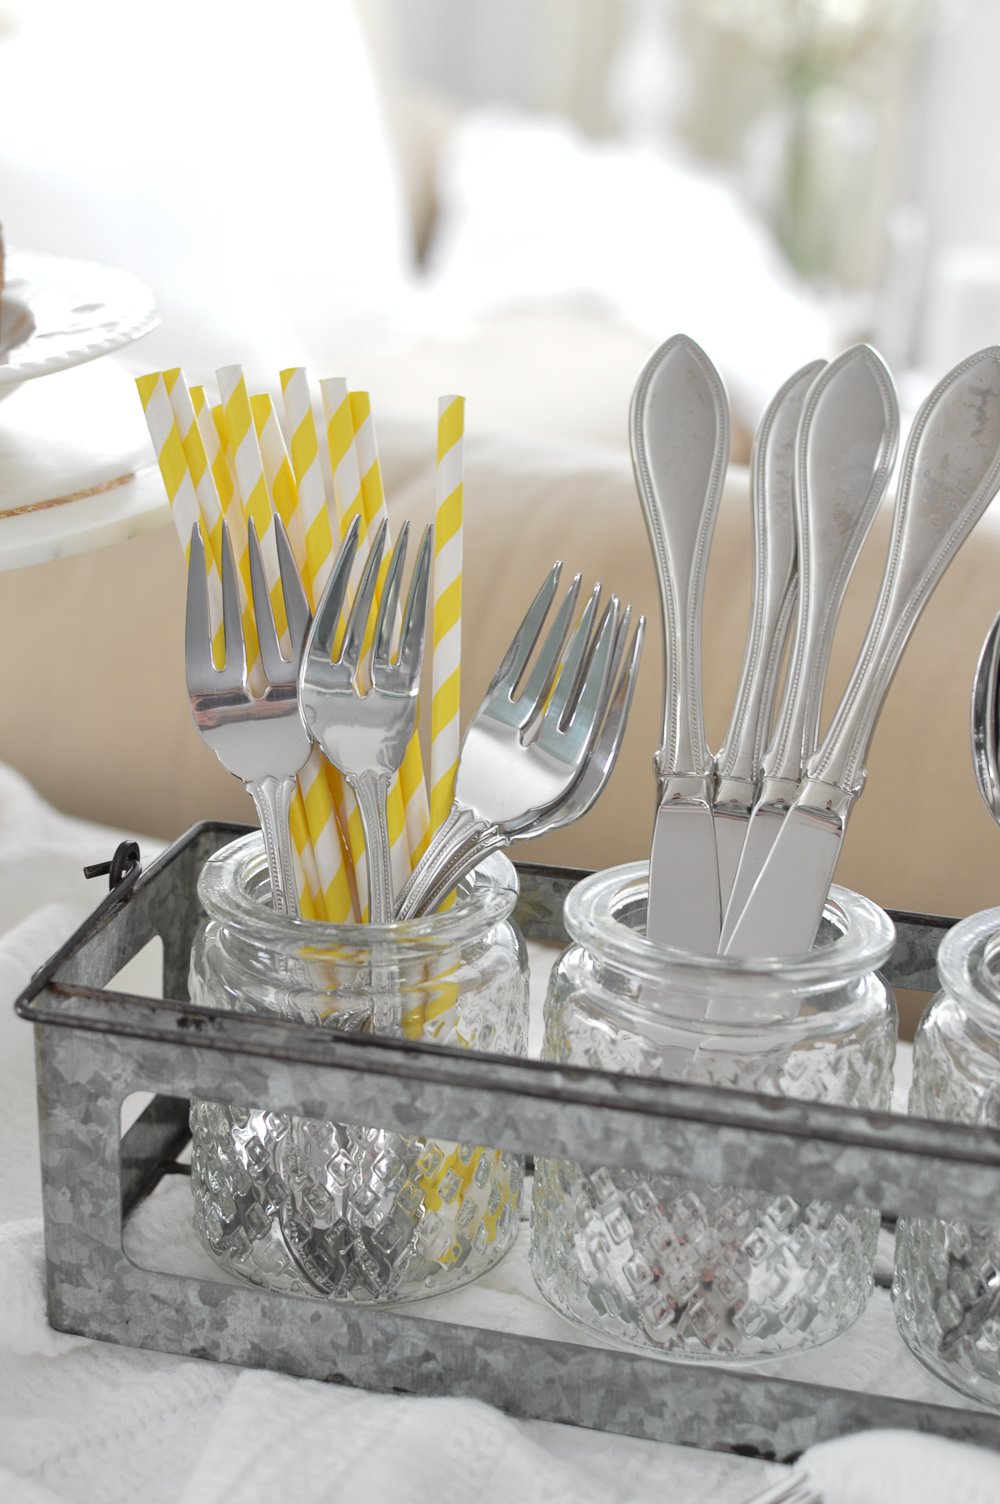 Use a tea light candle caddy to store flatware/silverware & pretty paper straws